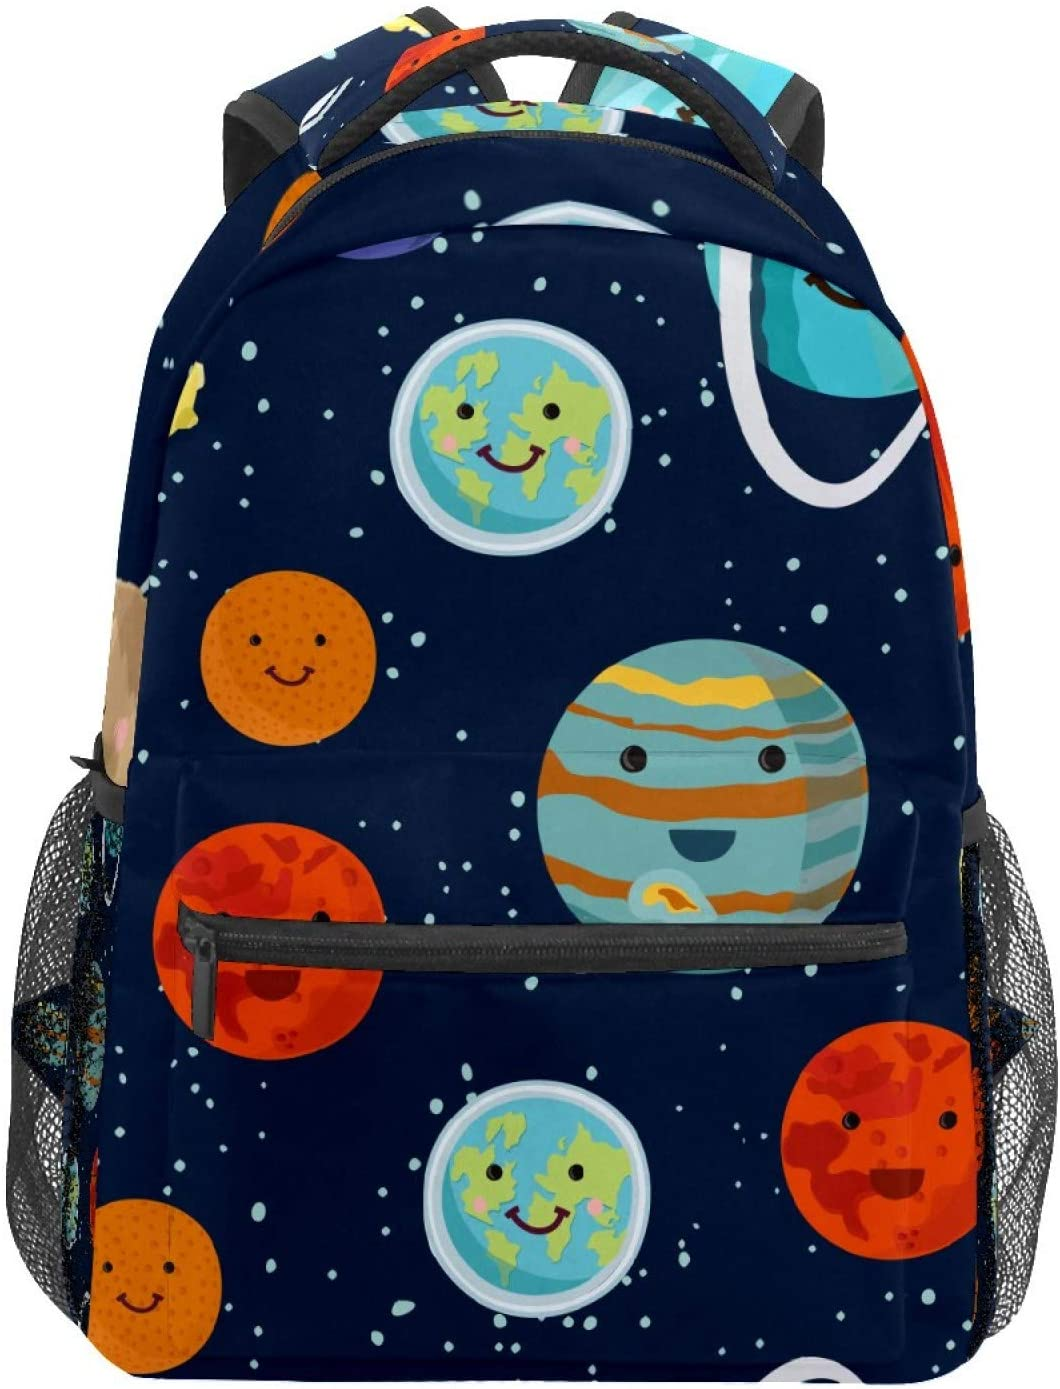 School Backpacks Universe Cute Earth Planet Cartoon Travel Laptop Small Backpack for Woman Teen Girls Boys Middle Student Book Bag